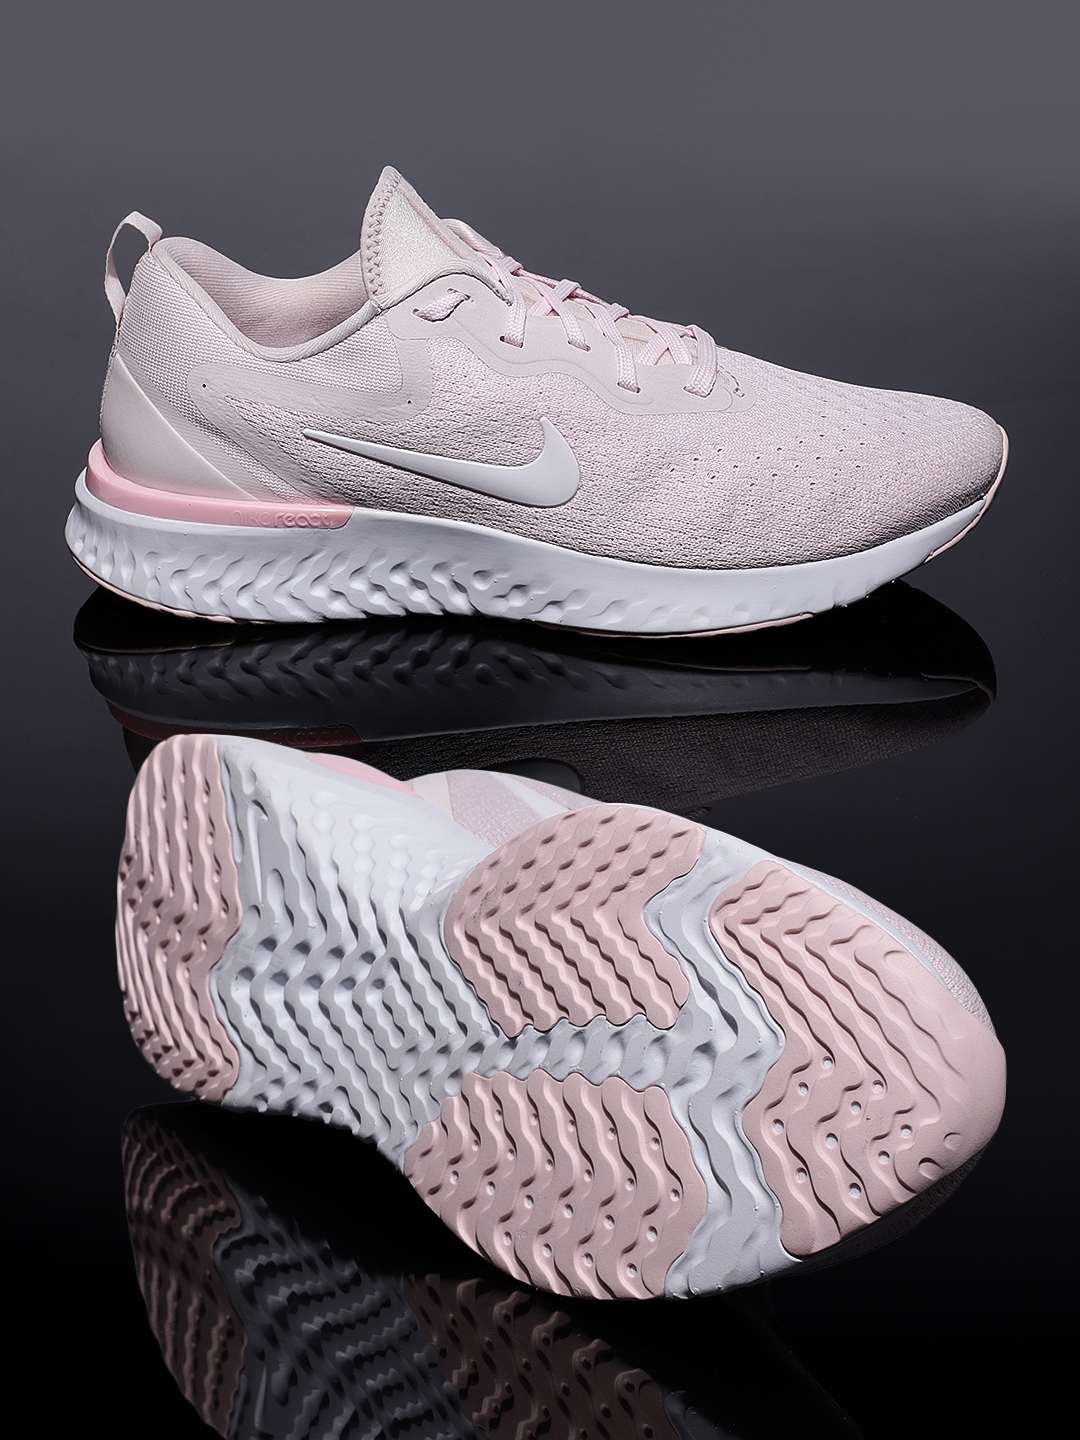 04ec44185415f Buy Nike Women Pink Odyssey React Running Shoes - Sports Shoes for ...